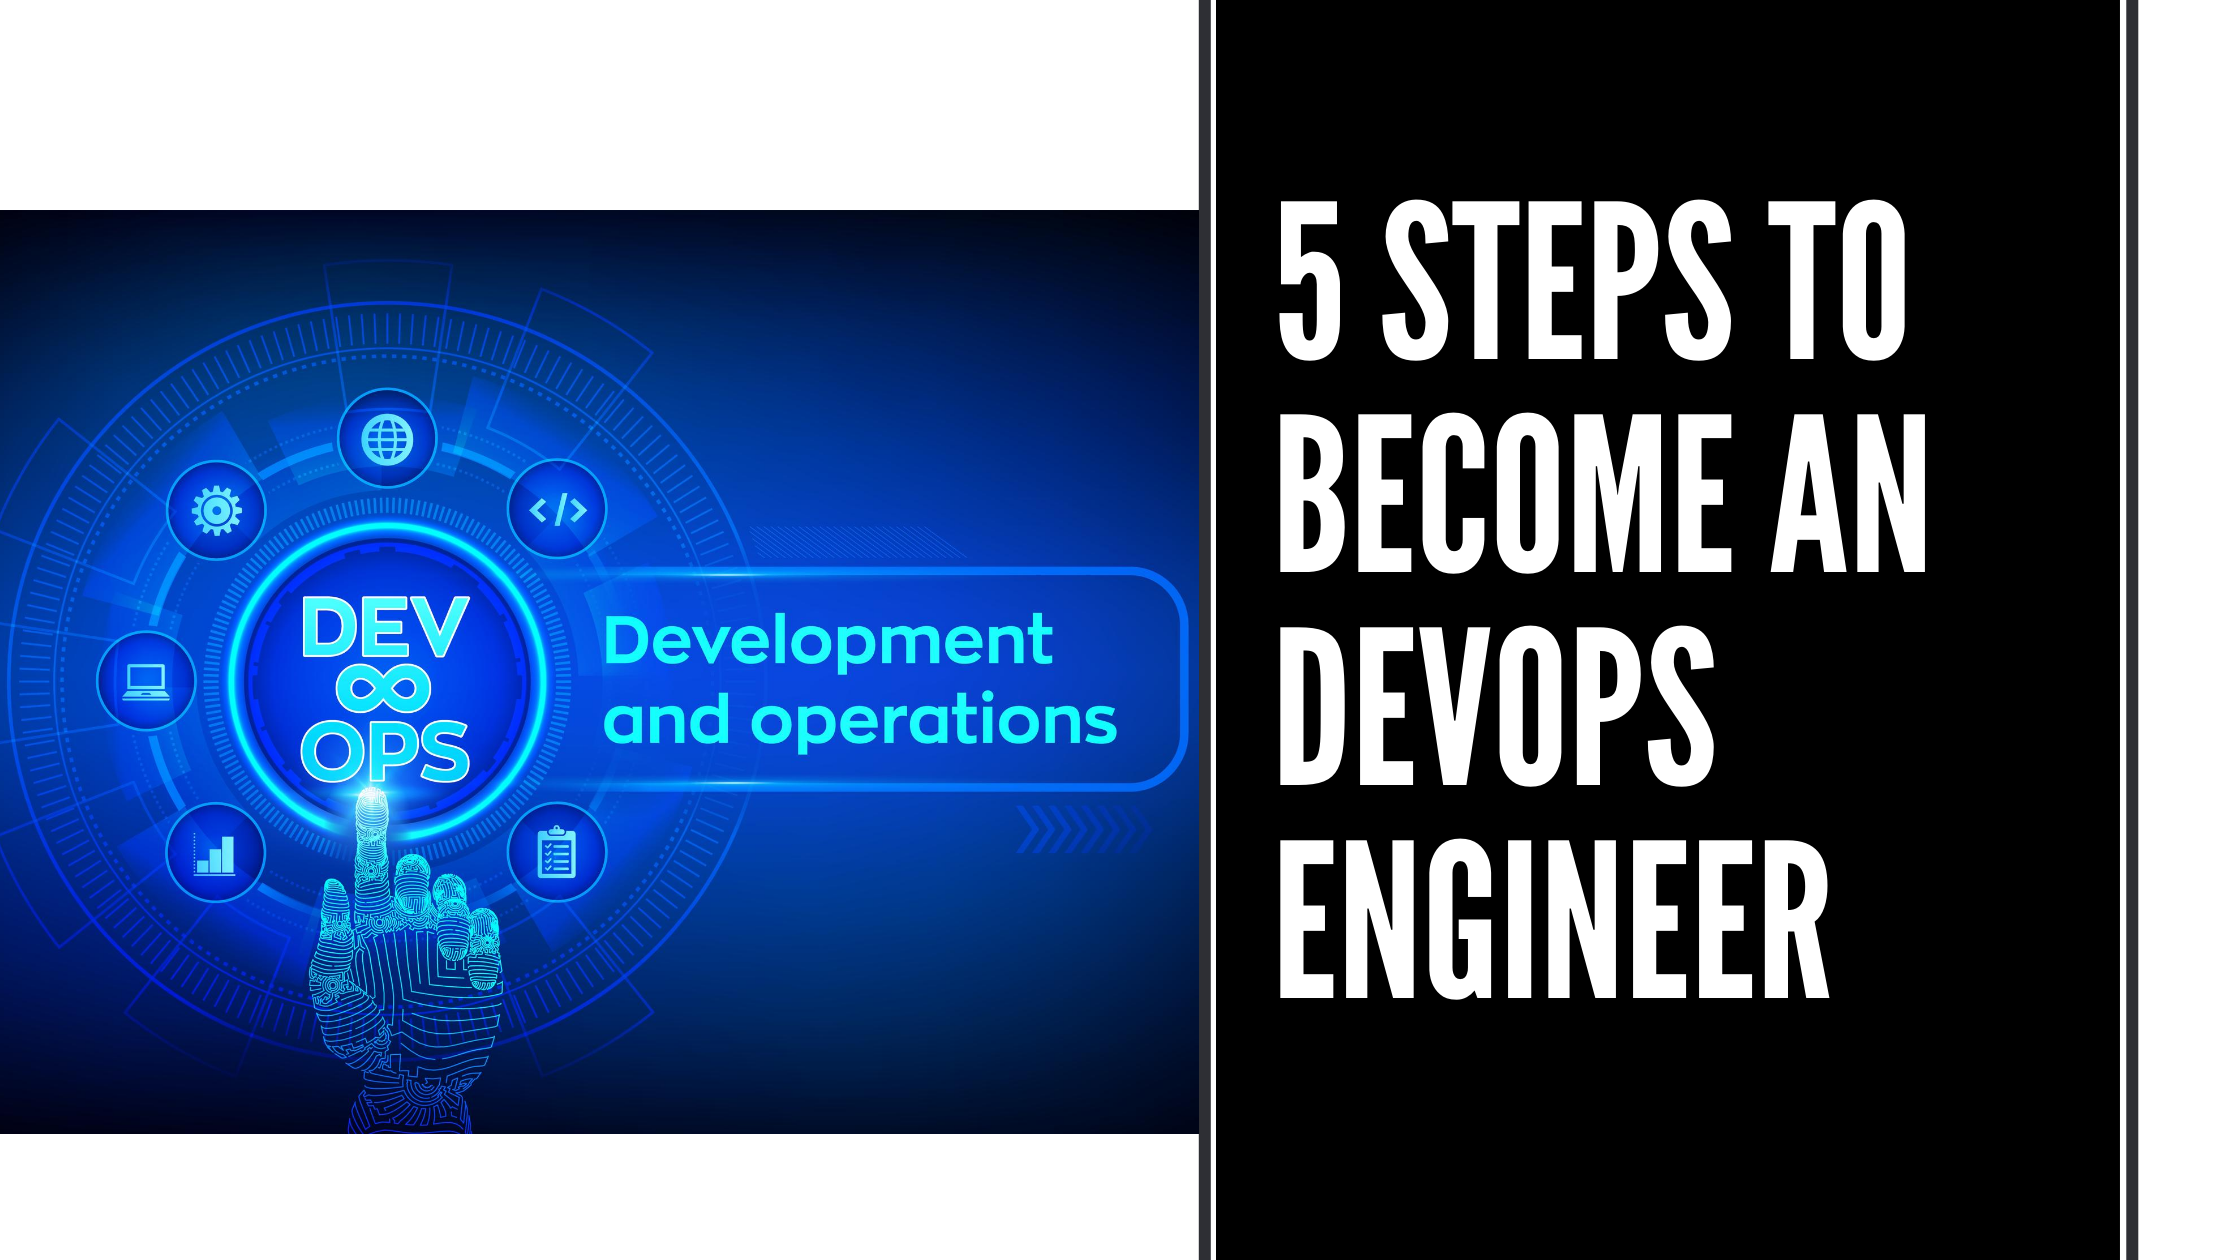 5 STEPS TO BECOME DevOps ENGINEER